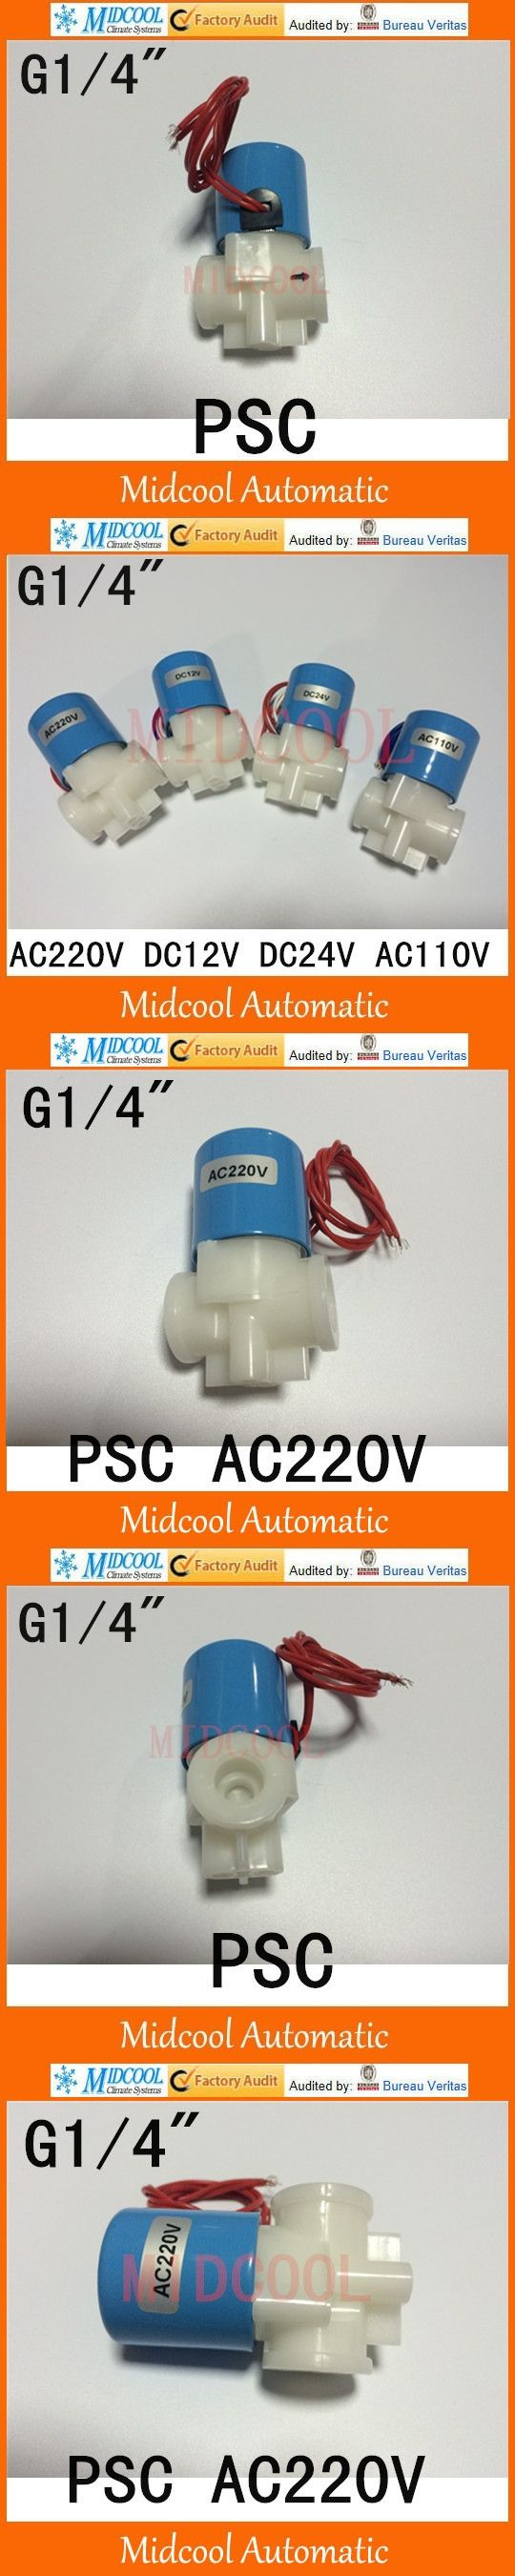 """high quality 2 way Plastic micro solenoid valve water dispenser 1/4"""" BSP flow control for water purifier RO machine"""